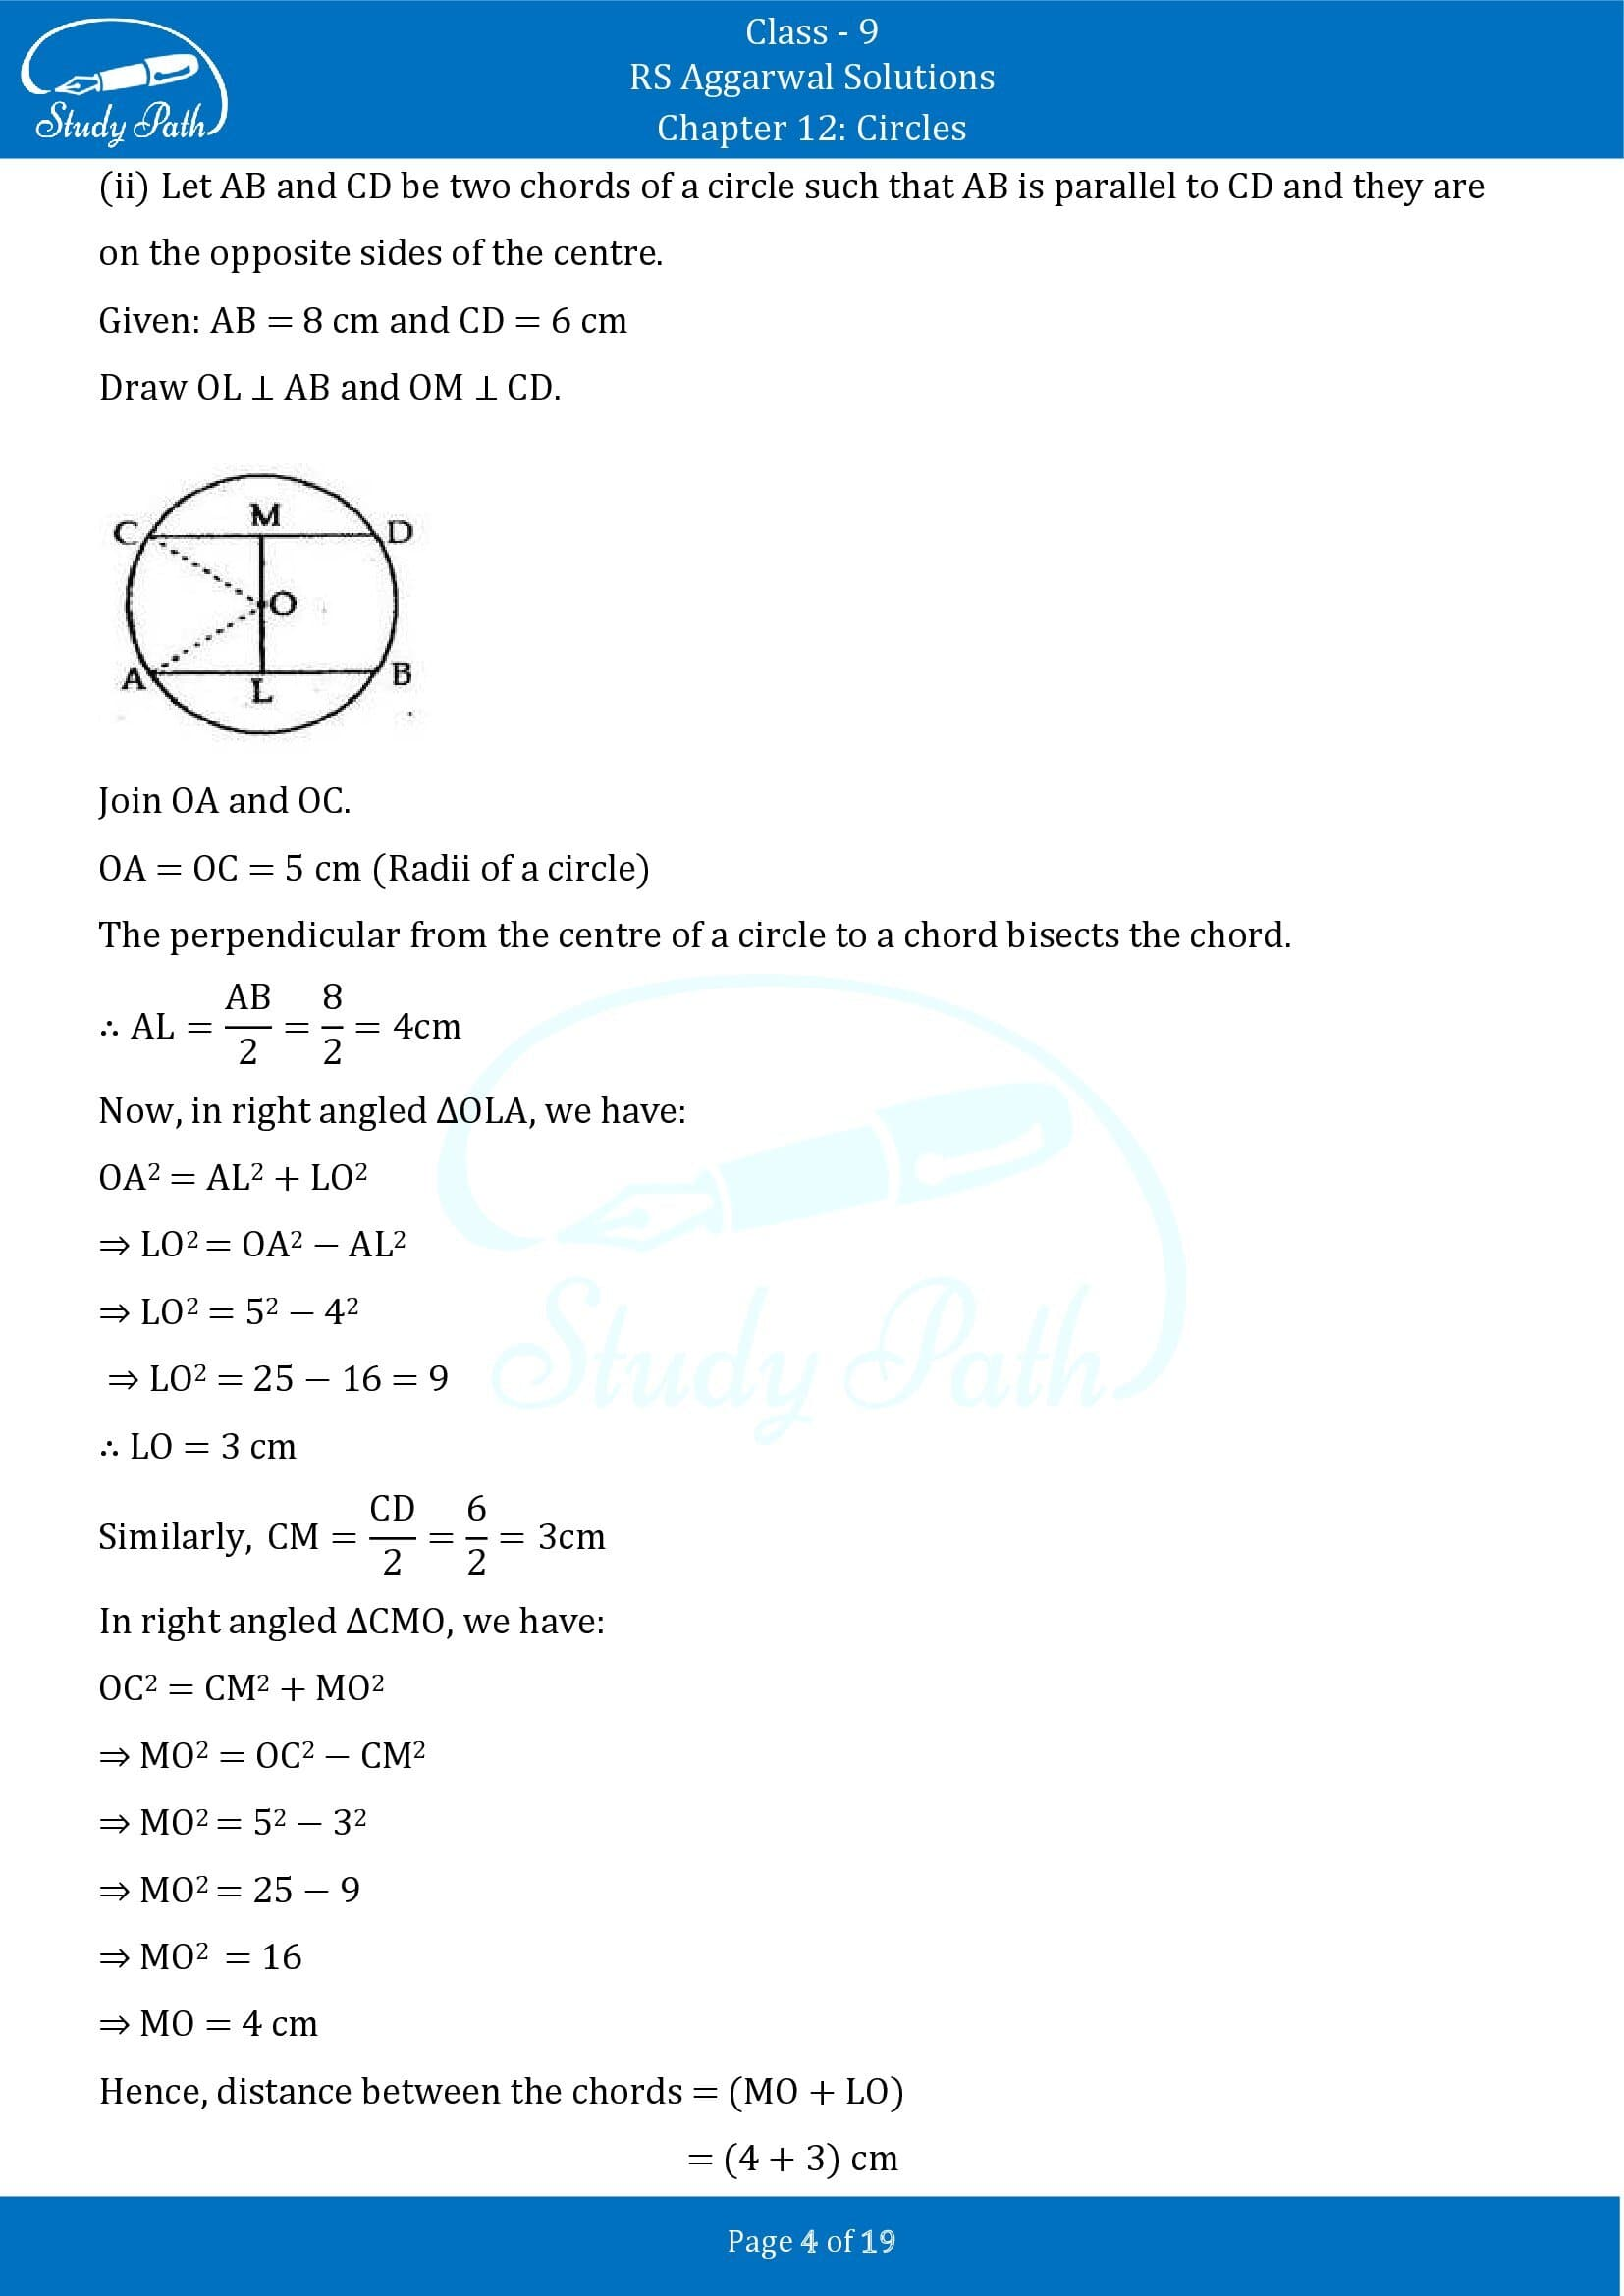 RS Aggarwal Solutions Class 9 Chapter 12 Circles Exercise 12A 00004